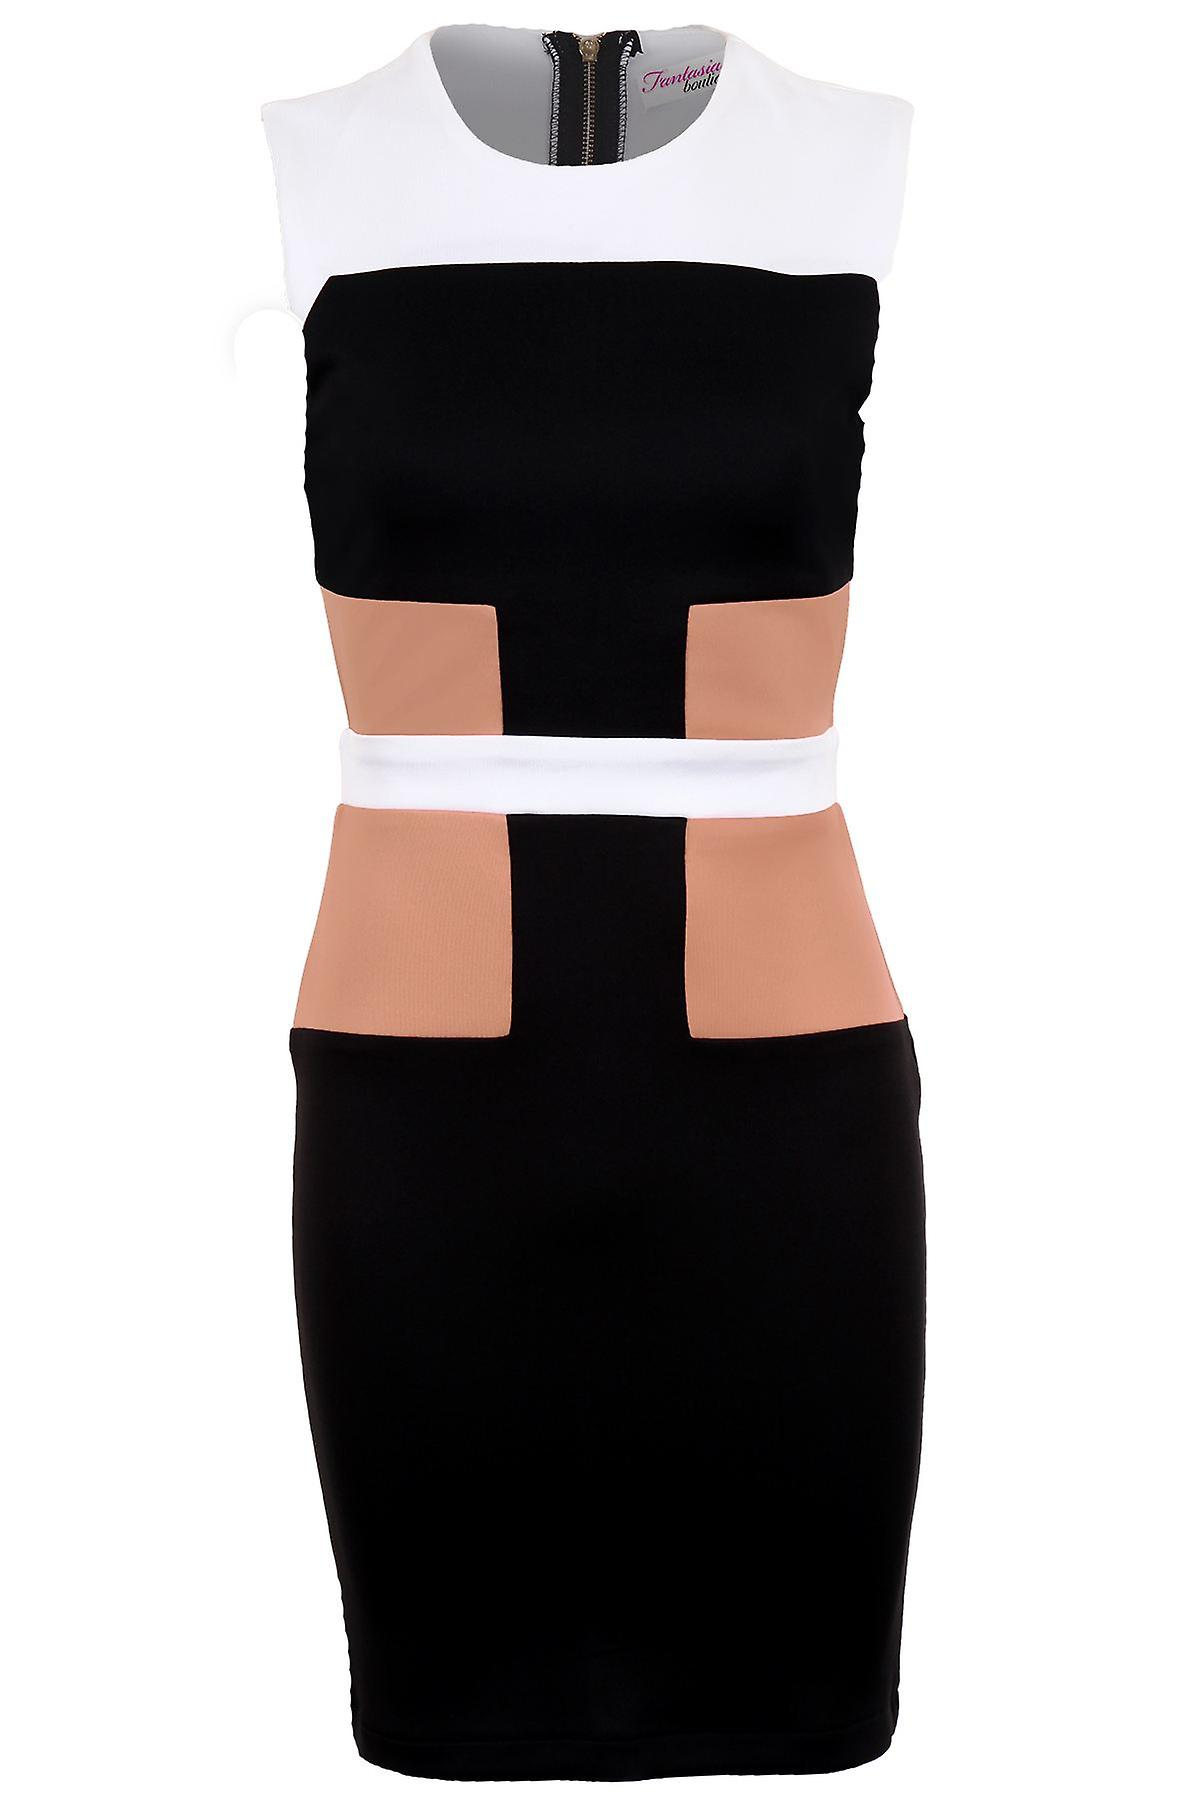 Ladies Sleeveless Panel Contrast Zip Back Fitted Women's Bodycon Party Dress